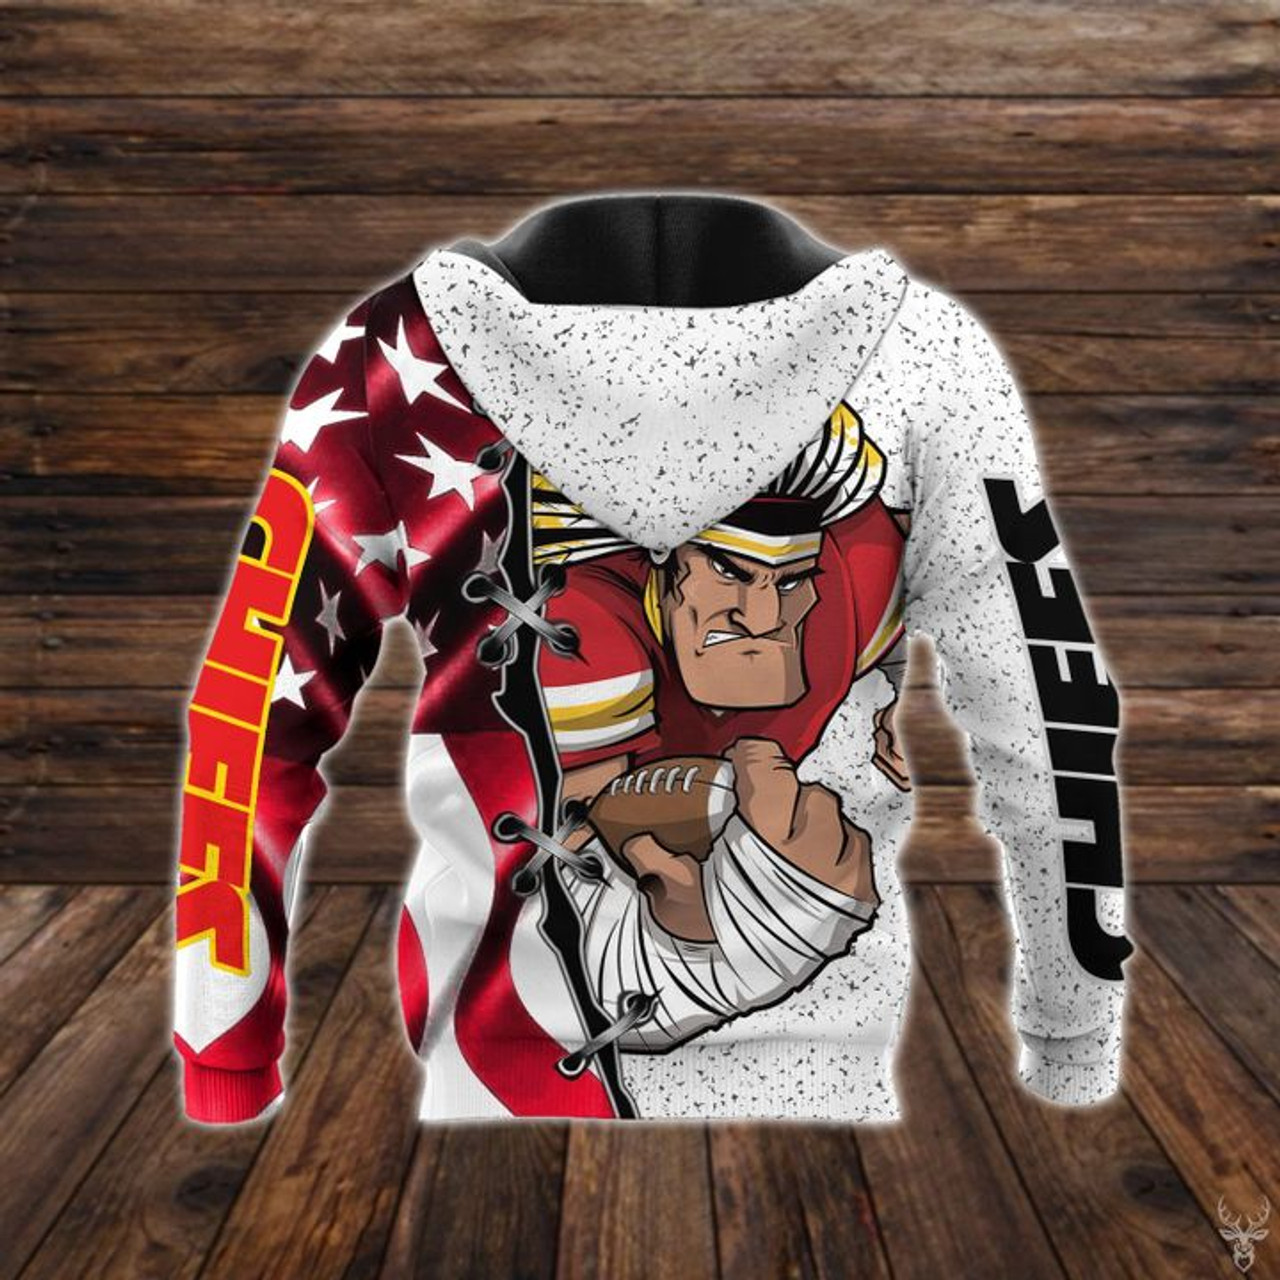 **(OFFICIAL-N.F.L.KANSAS-CITY-CHIEFS-PULLOVER-HOODIES/CUSTOM-3D-CHIEFS-TEAM-LOGOS & OFFICIAL-CHIEFS-TEAM-COLORS/NICE-3D-DETAILED-GRAPHIC-PRINTED-DOUBLE-SIDED/ALL-OVER-ENTIRE-HOODIE-PRINTED-DESIGN/TRENDY-WARM-PREMIUM-CHIEFS-PULLOVER-HOODIES)**